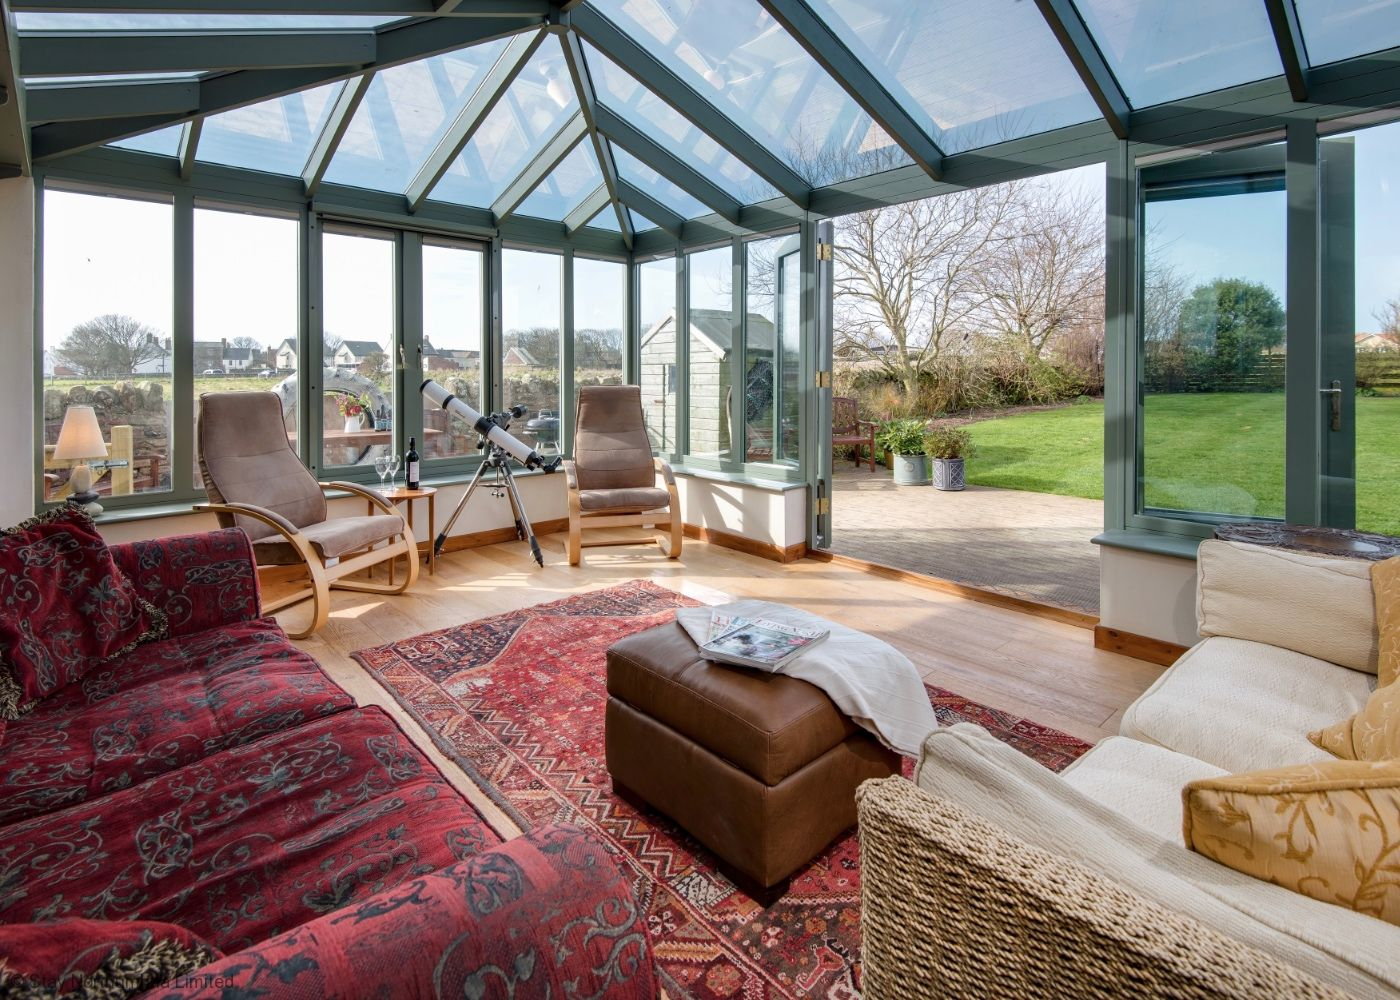 Bright & Airy Conservatory leading out to enclosed garden